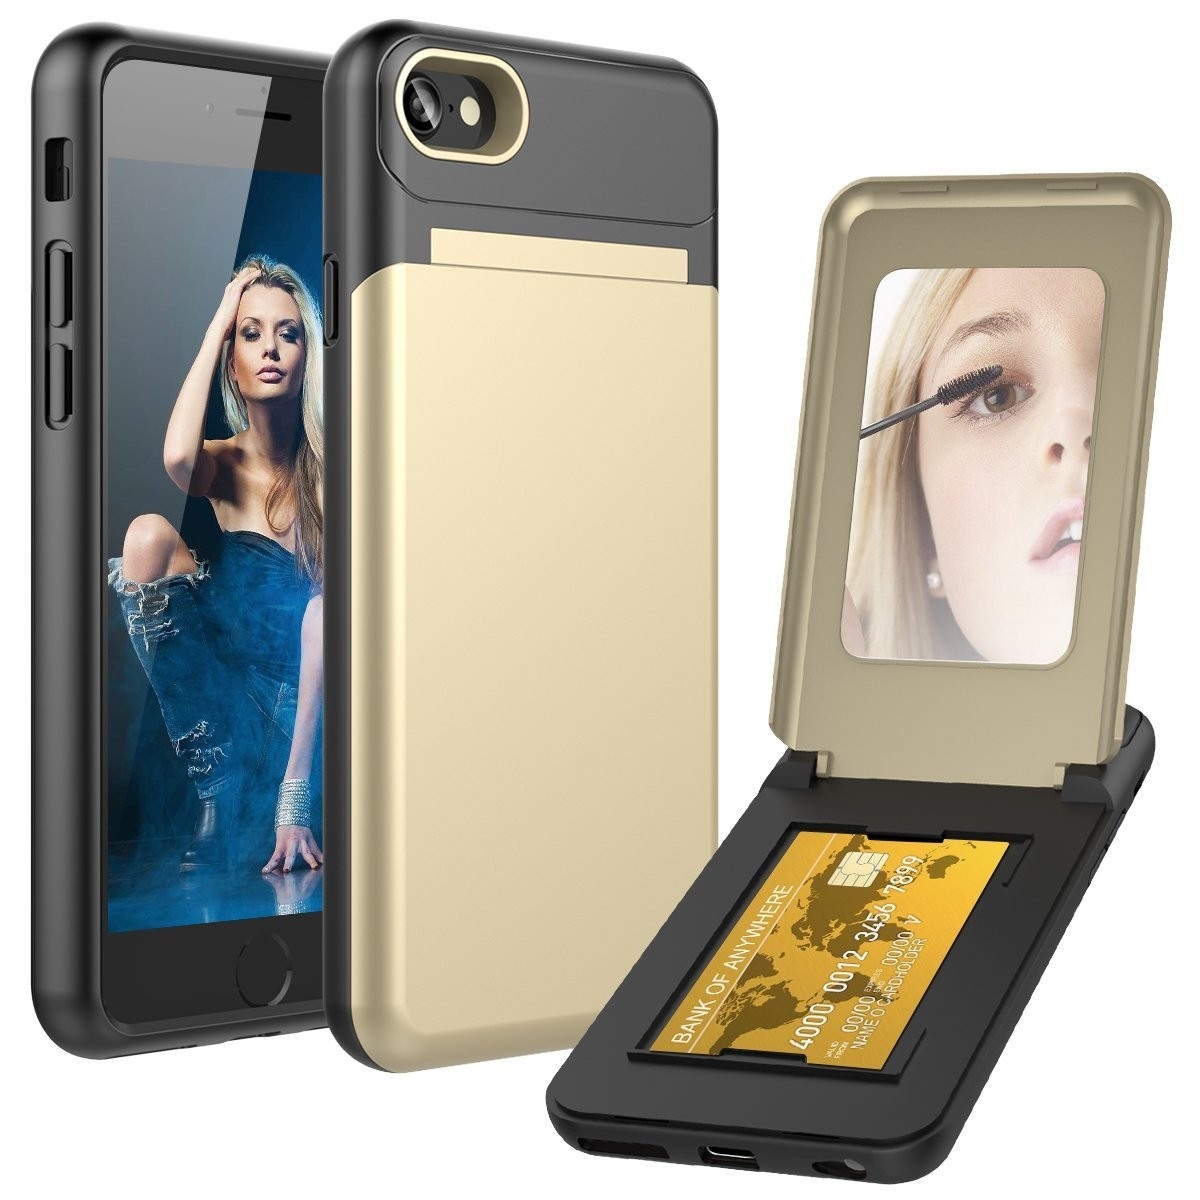 Apple iPhone 7 -  Hard Phone Case with Hidden Mirror and Card Holder Compartment, Gold/Black